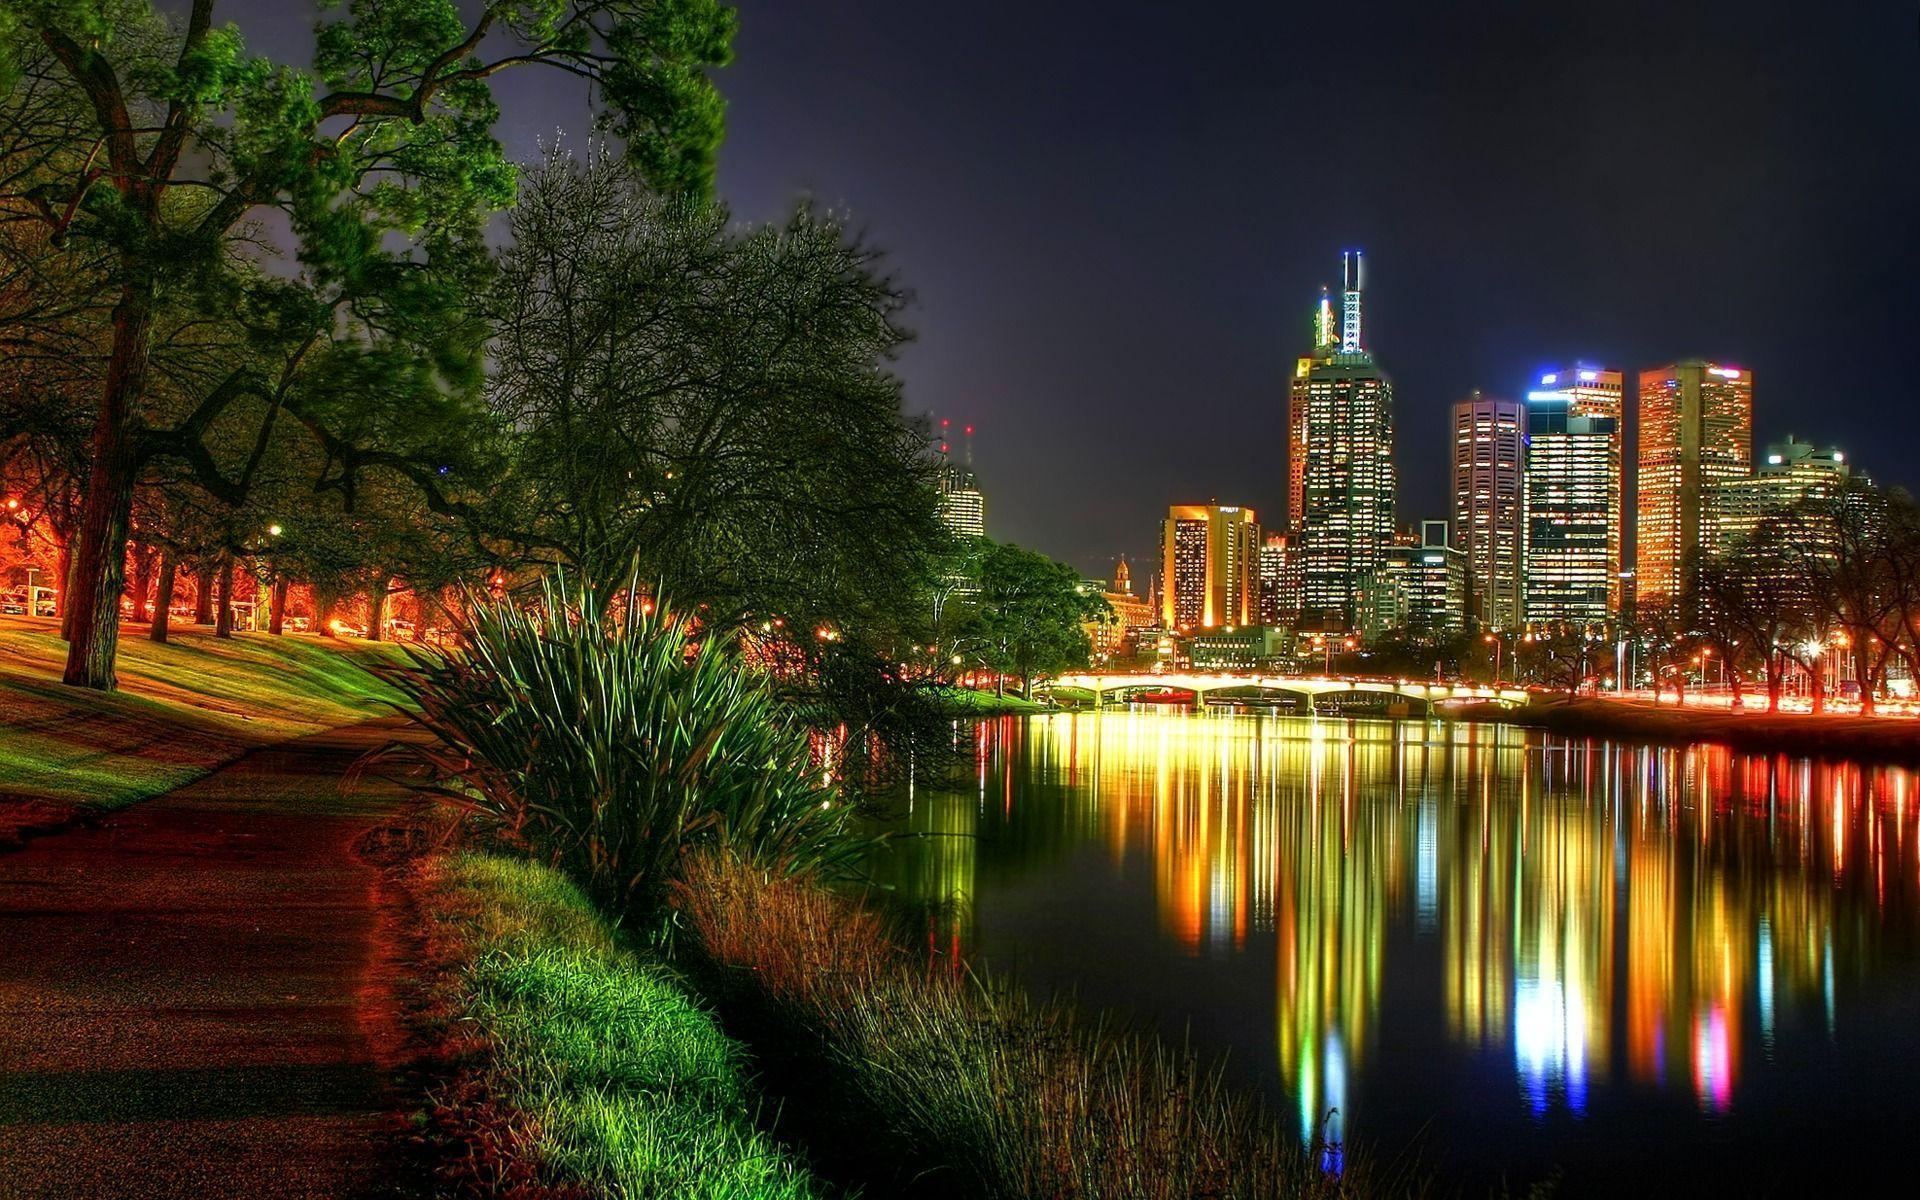 City street background free stock photos download Free